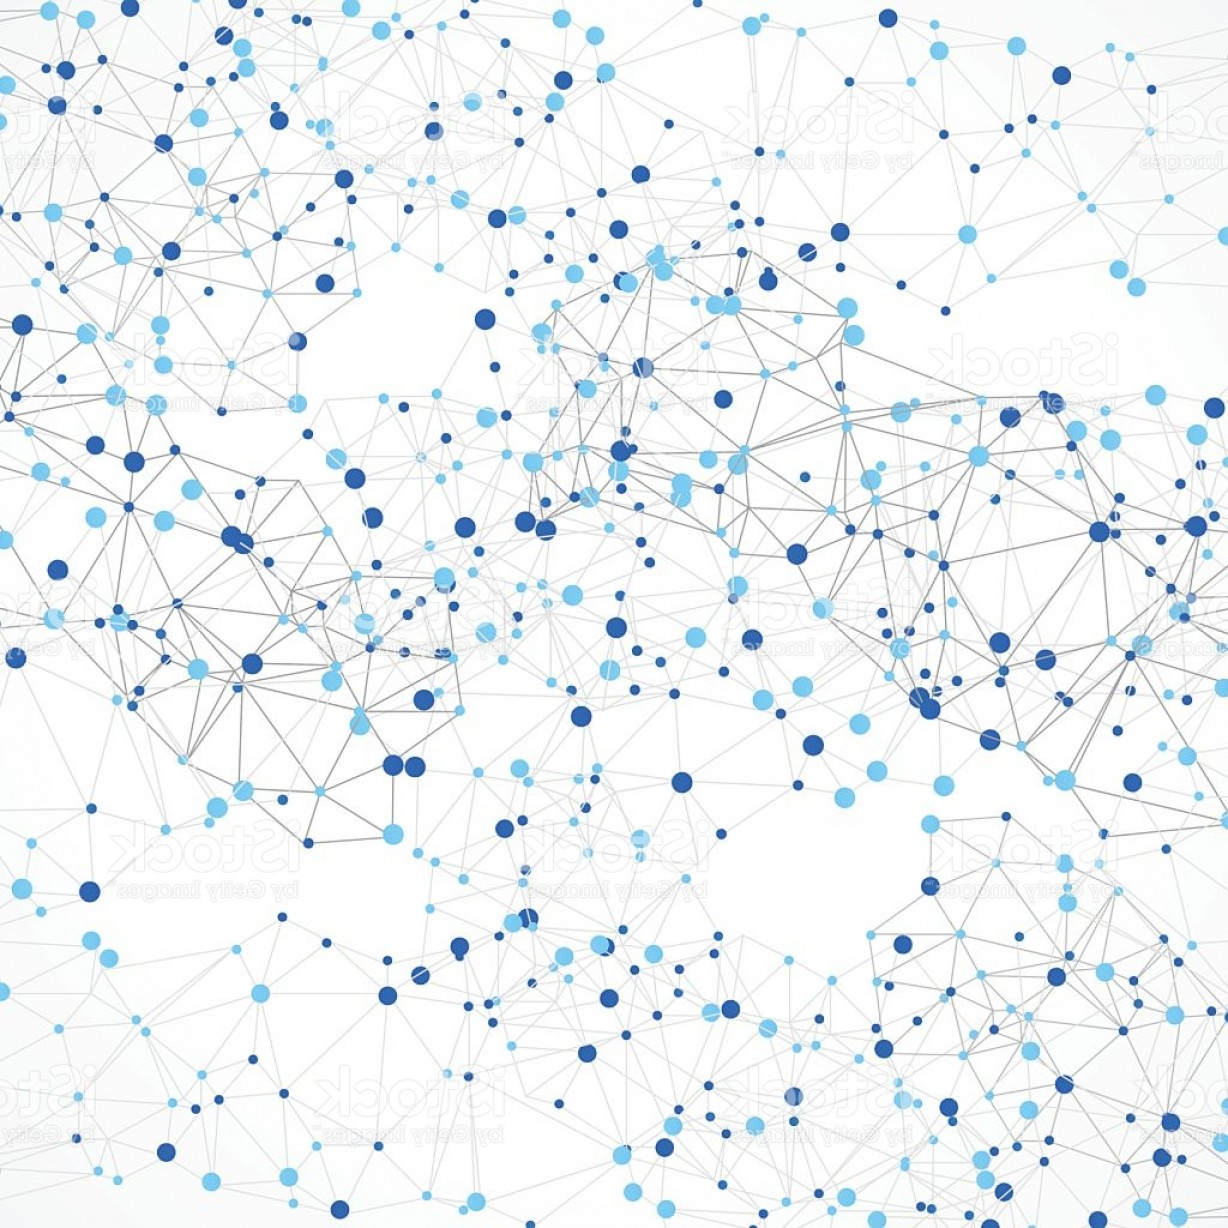 Free Abstract Vector Art: Abstract Polygonal Background With Connecting Dots And Lines Gm